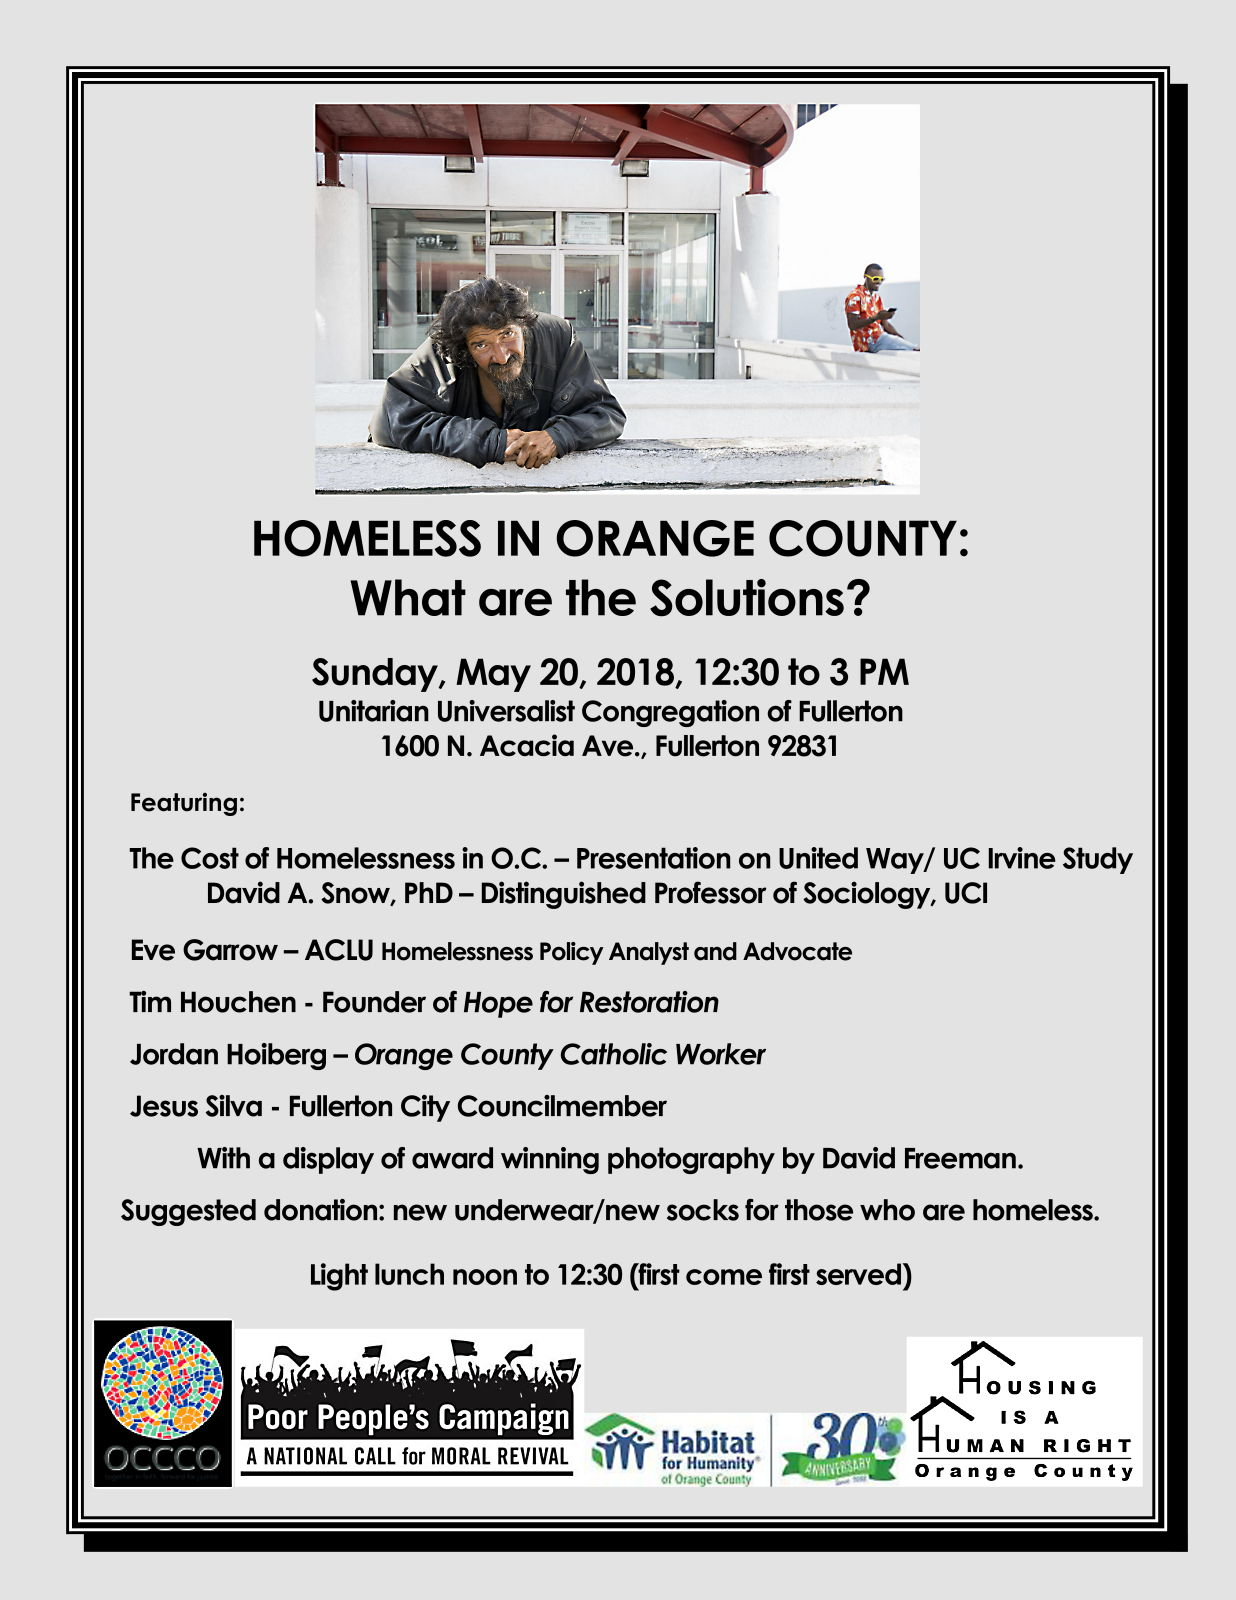 HOMELESS IN ORANGE COUNTY: What are the Solutions